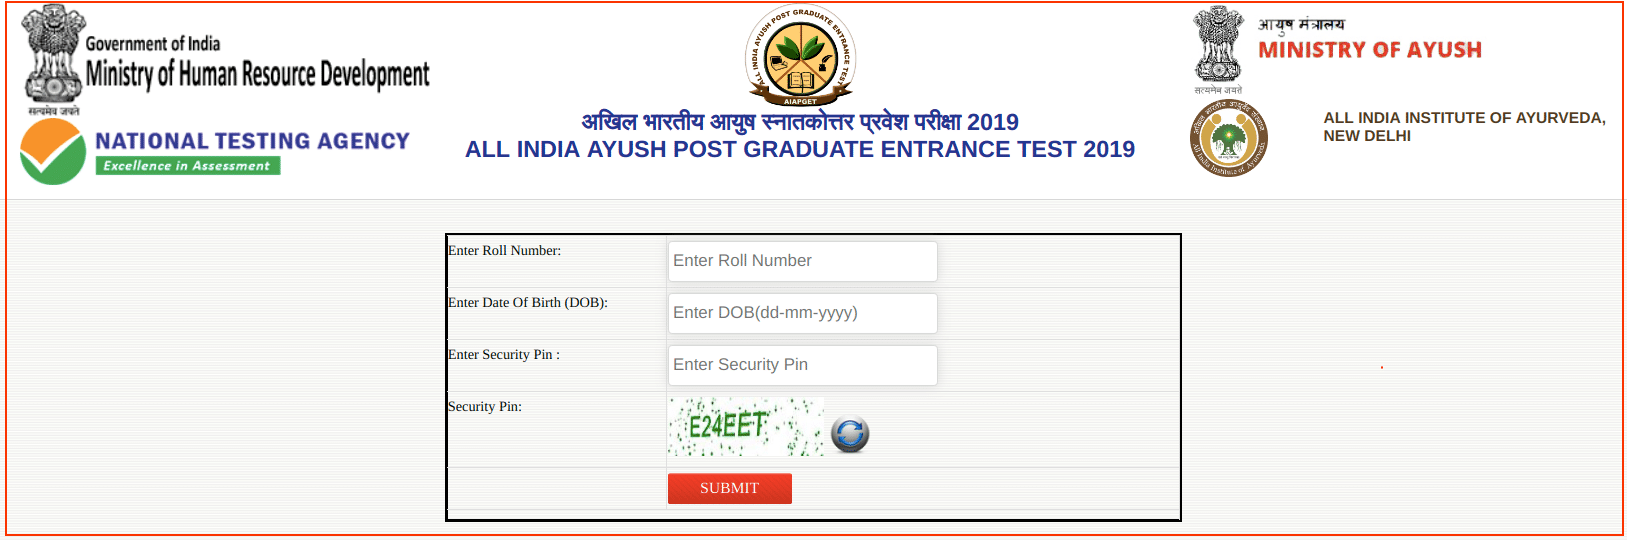 AIAPGET Result 2019 Login